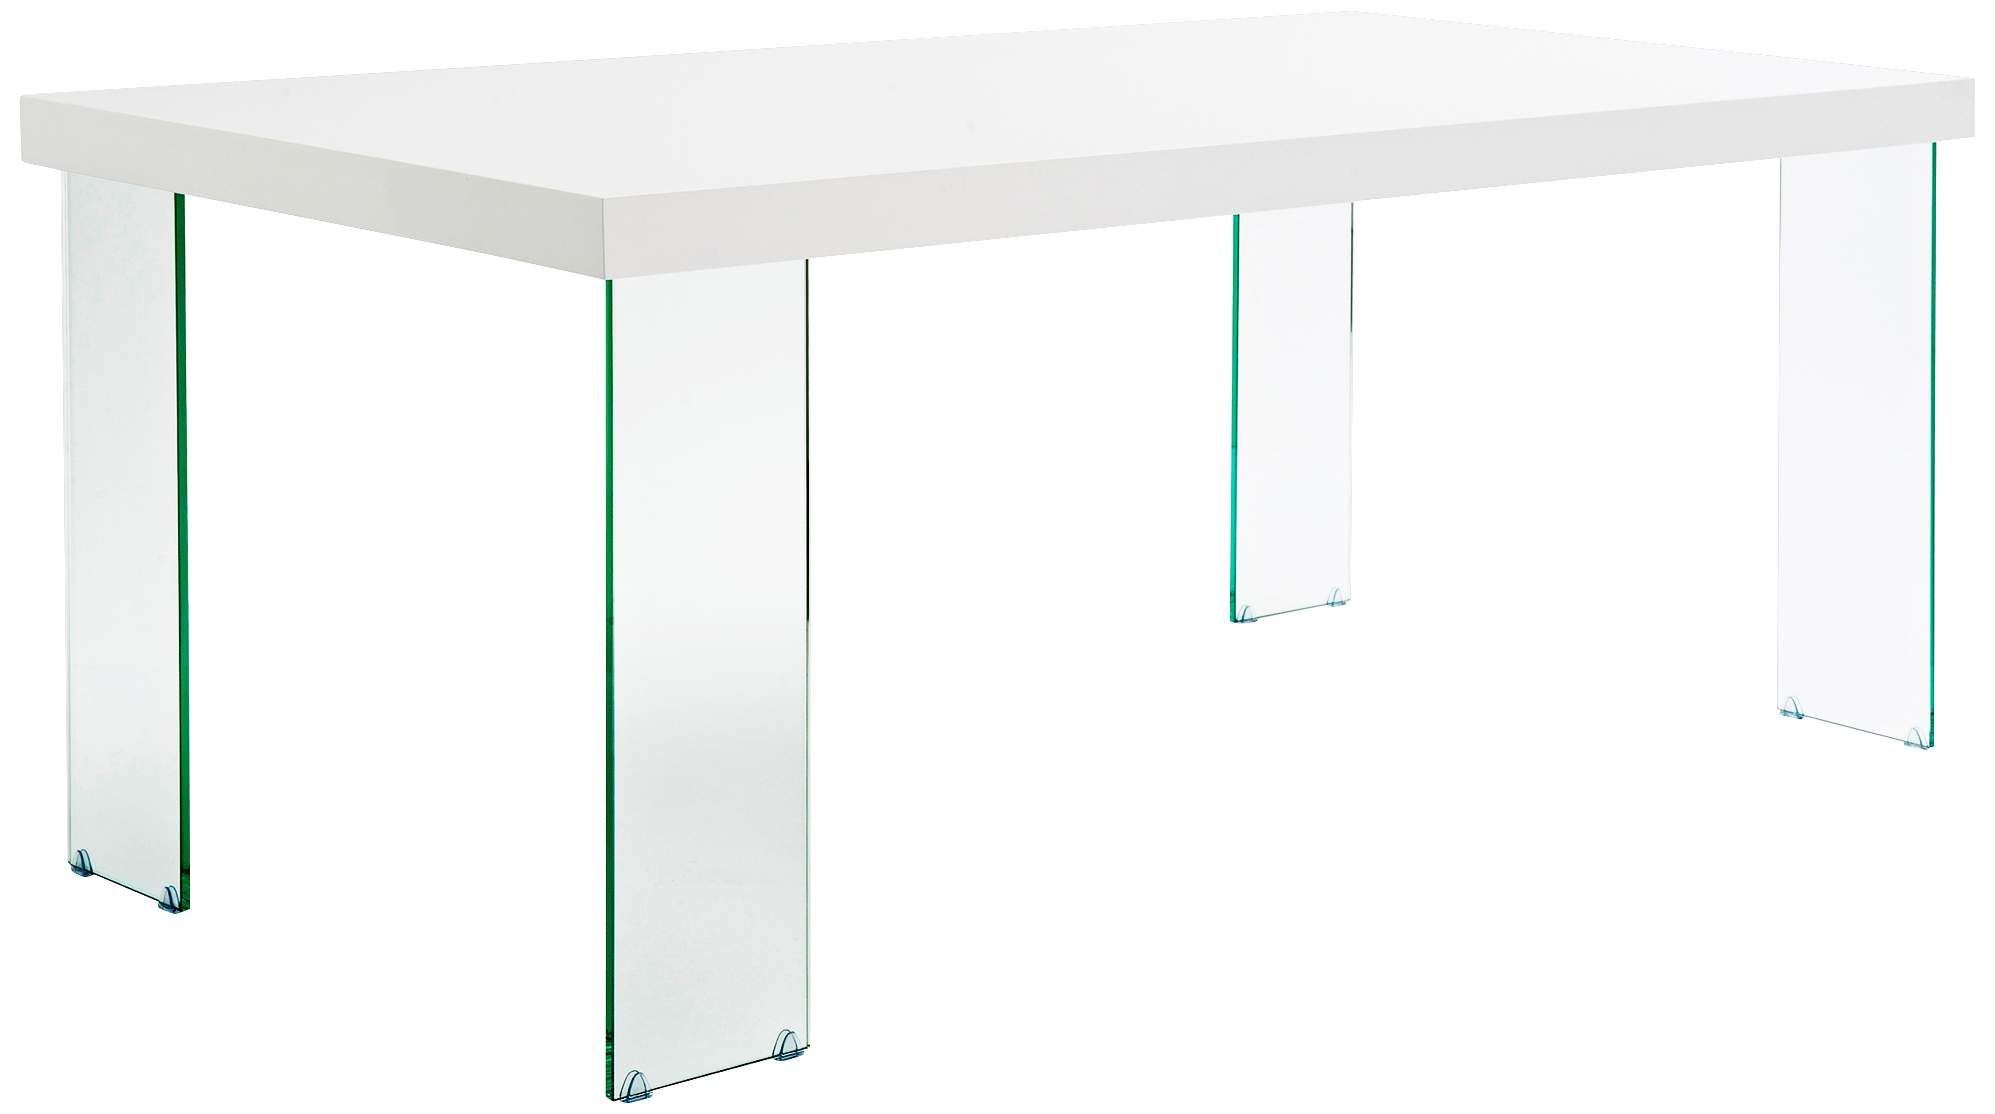 The Cabrio collection features beautiful rectangular dining tables with tempered glass legs. When viewed from any side, alternating wide and narrow stance legs offer visual interest. Comes with a white finish tabletop.